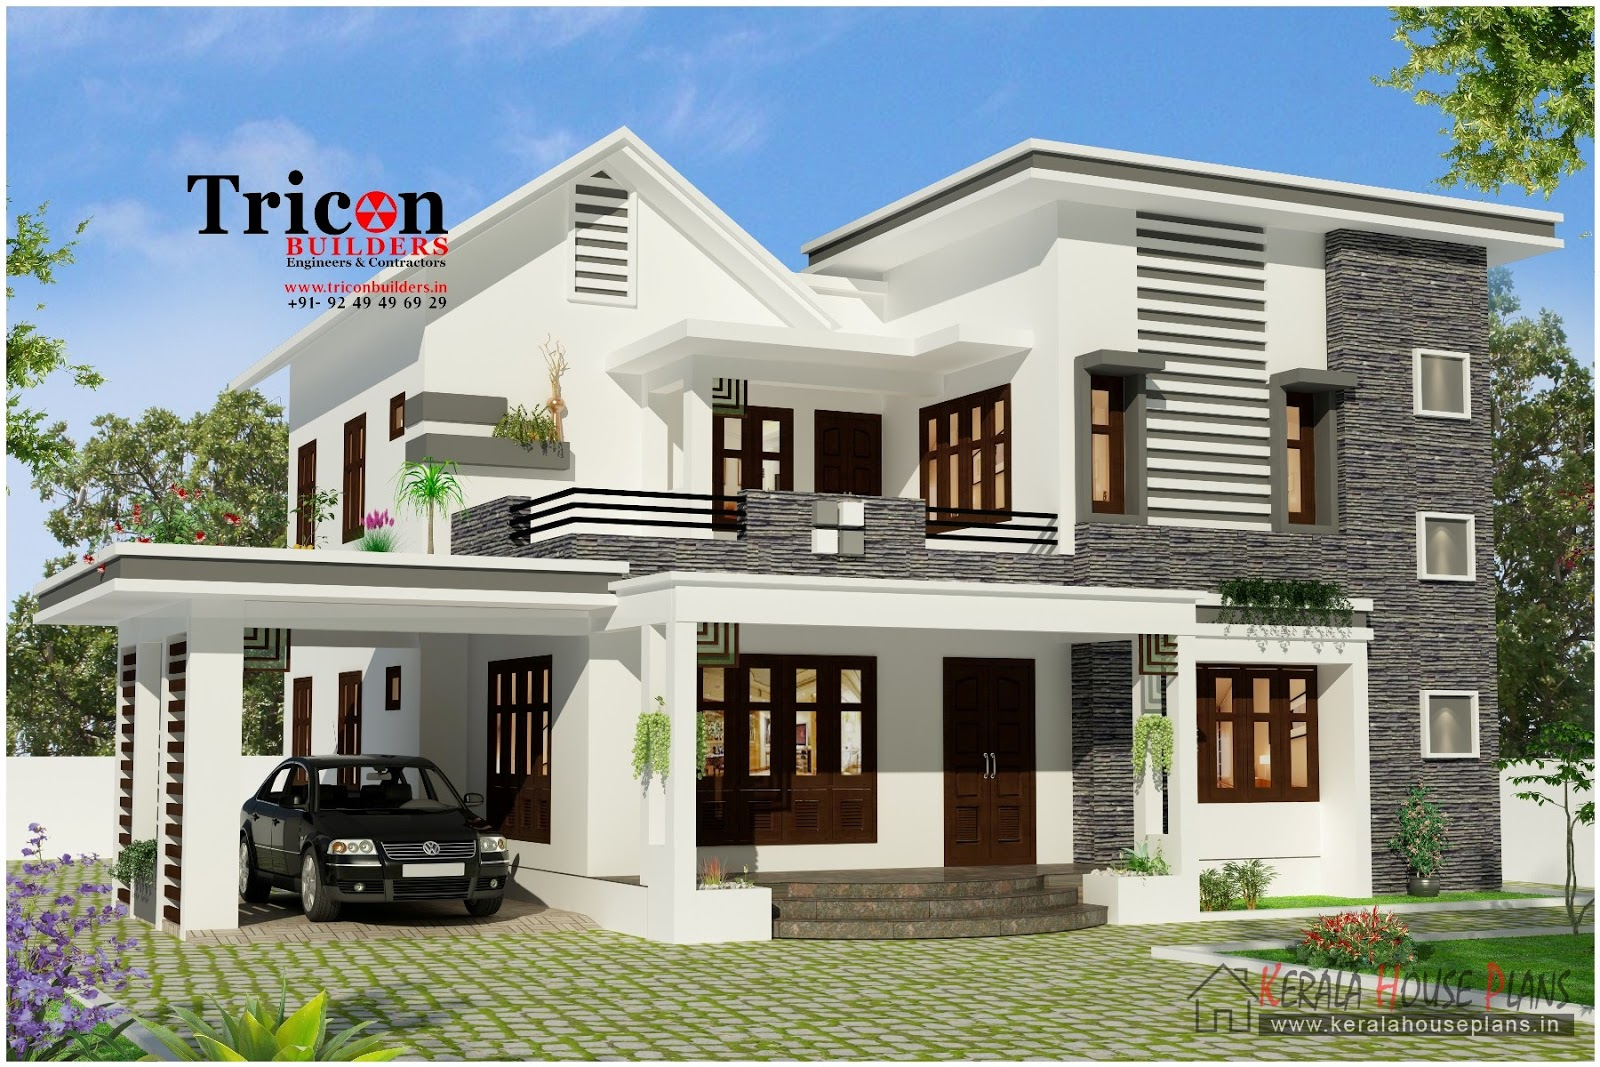 4 bedroom modern house design 2355 kerala house Contemporary home designs and floor plans